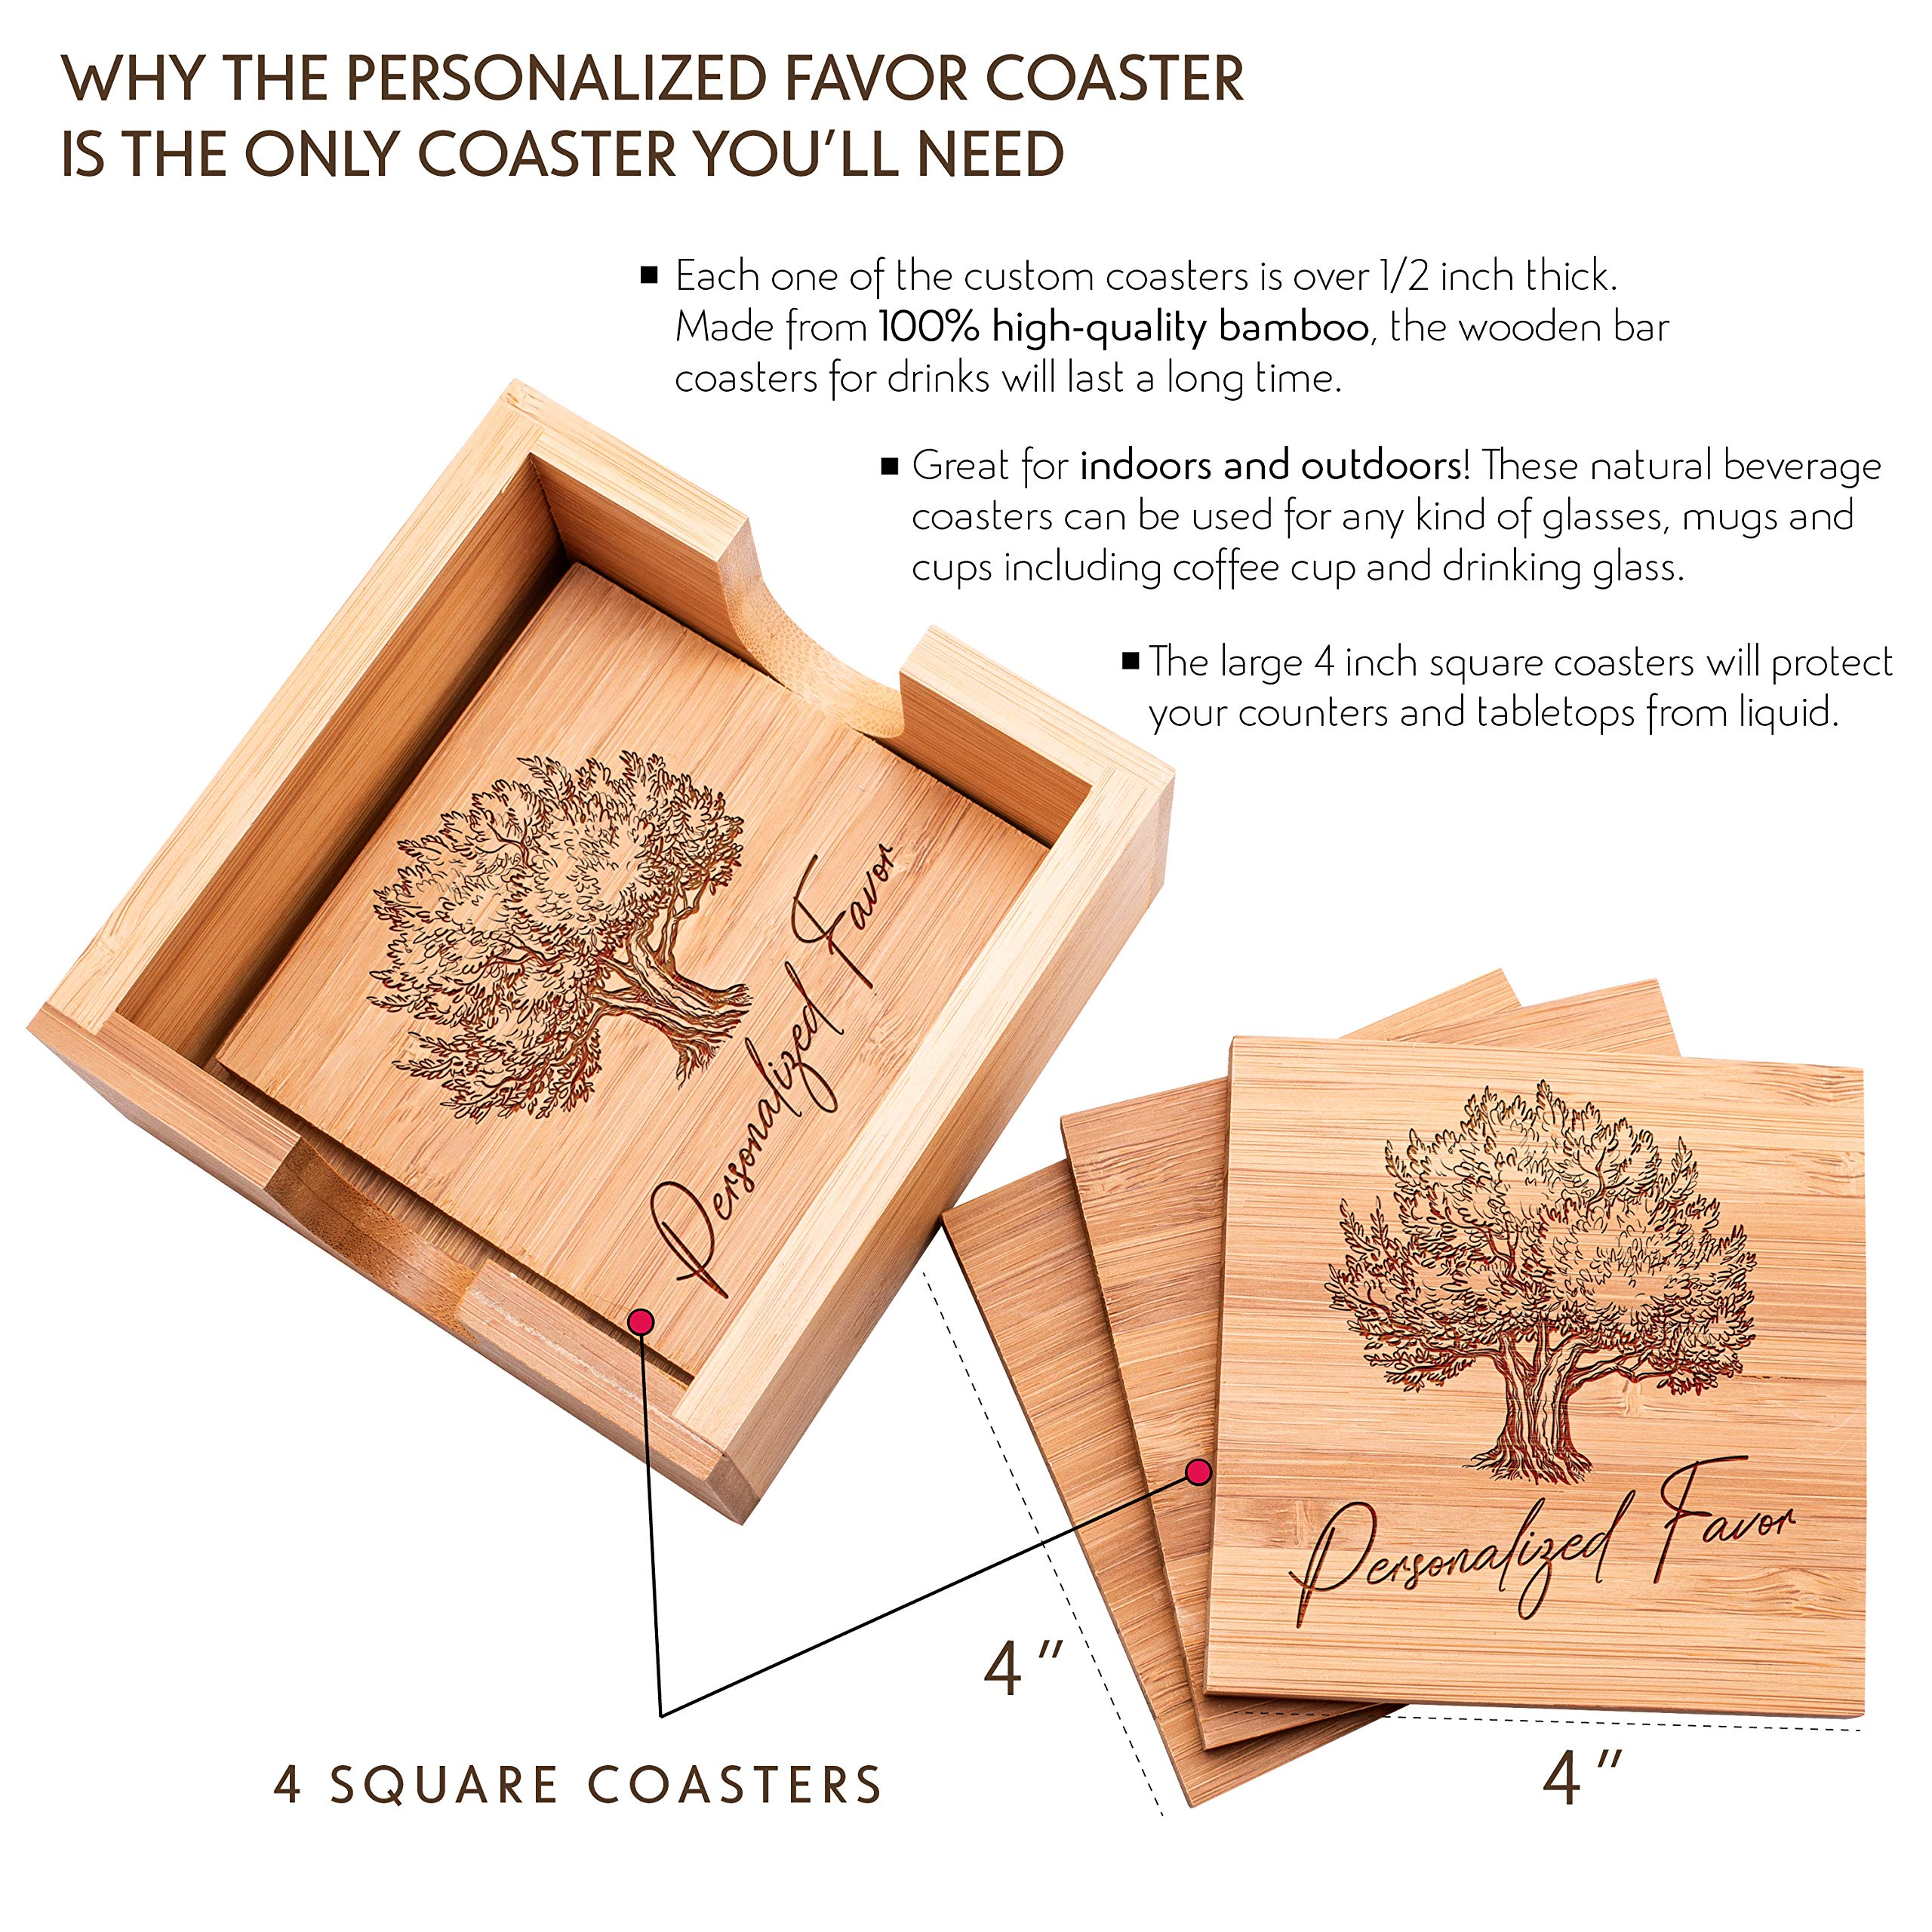 Personalized 4 Coasters Set with Holder Drink Coaster for Beer Cocktail Coffee Tea 4x4 Bamboo Wood Monogram Coaster Kit Customizable with Name Date Personalized Gifts Women Men Wedding Favors #5 by Personalized Favors (Image #2)